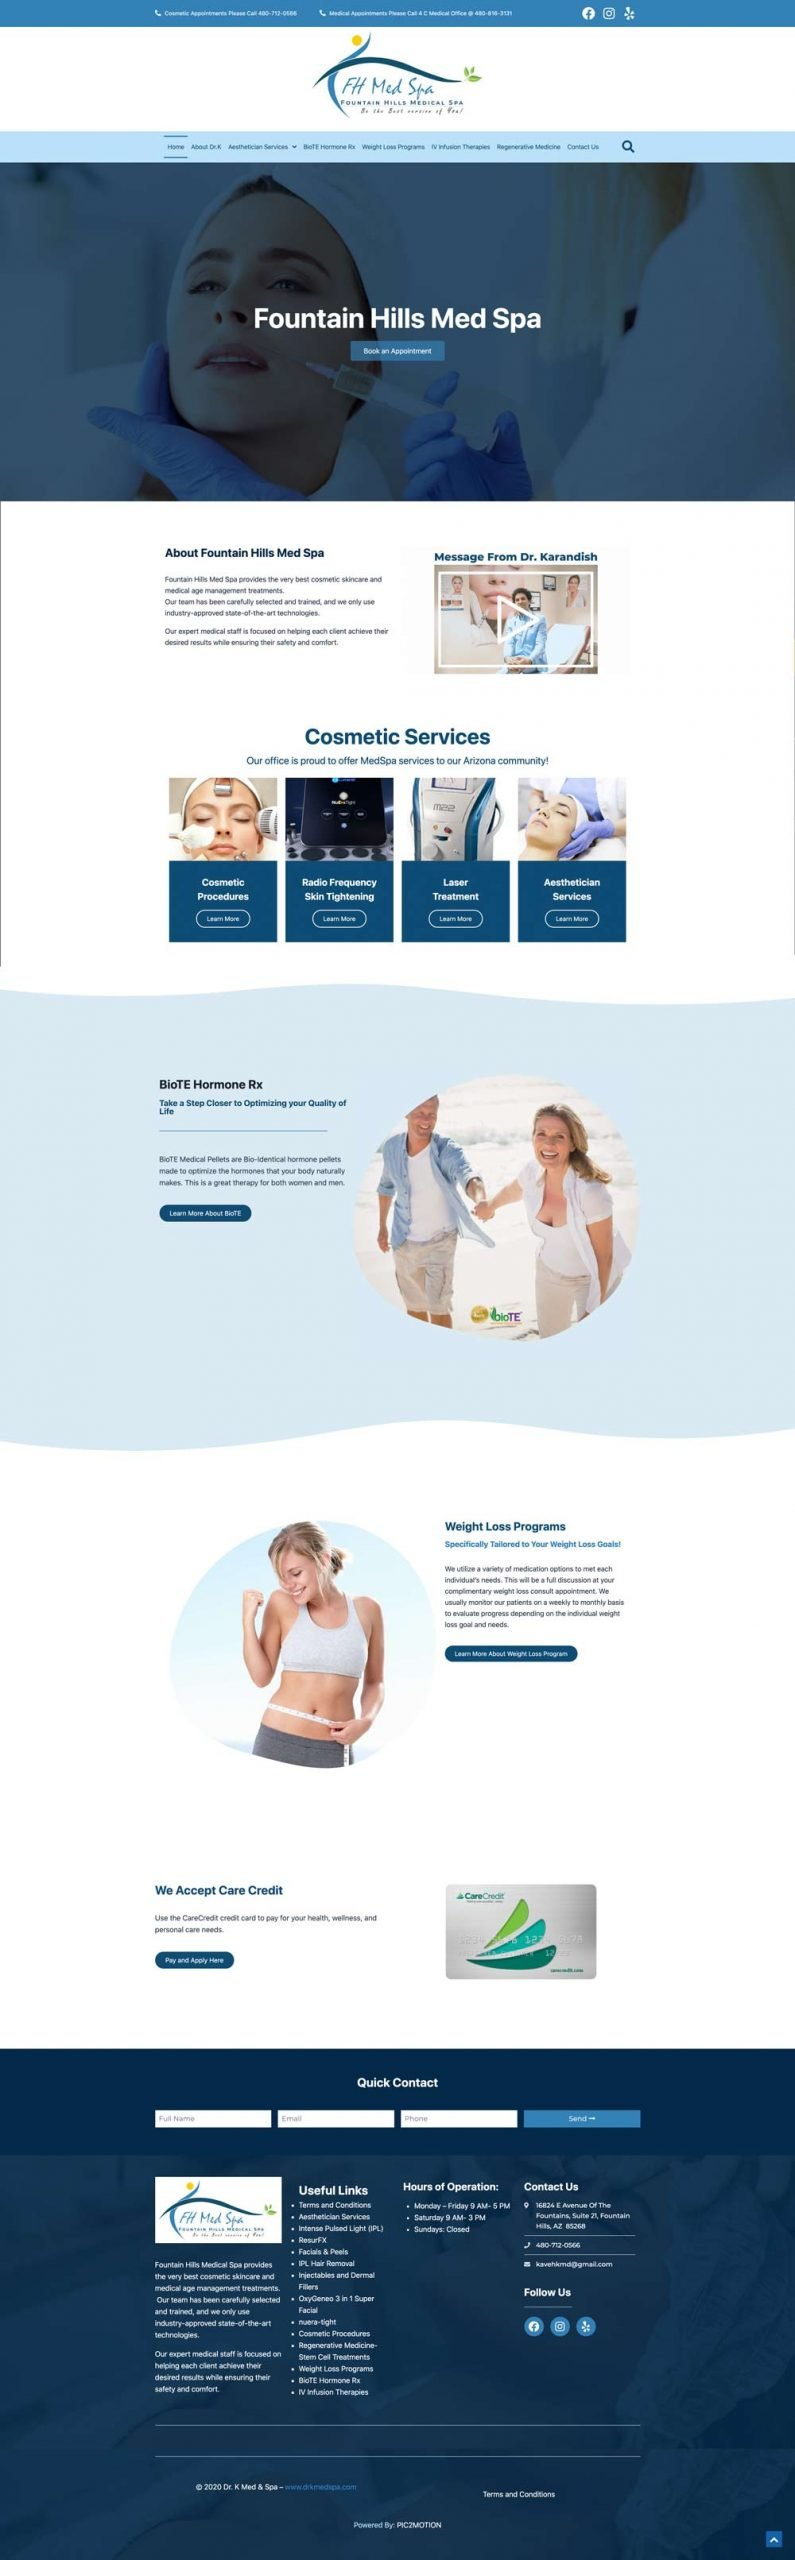 Dr-K-Med-Spa-Fountain-Hills-Arizona-–-MedSpa-Services-in-Arizona-Web-design-and-Development-by-PIC2MOTION